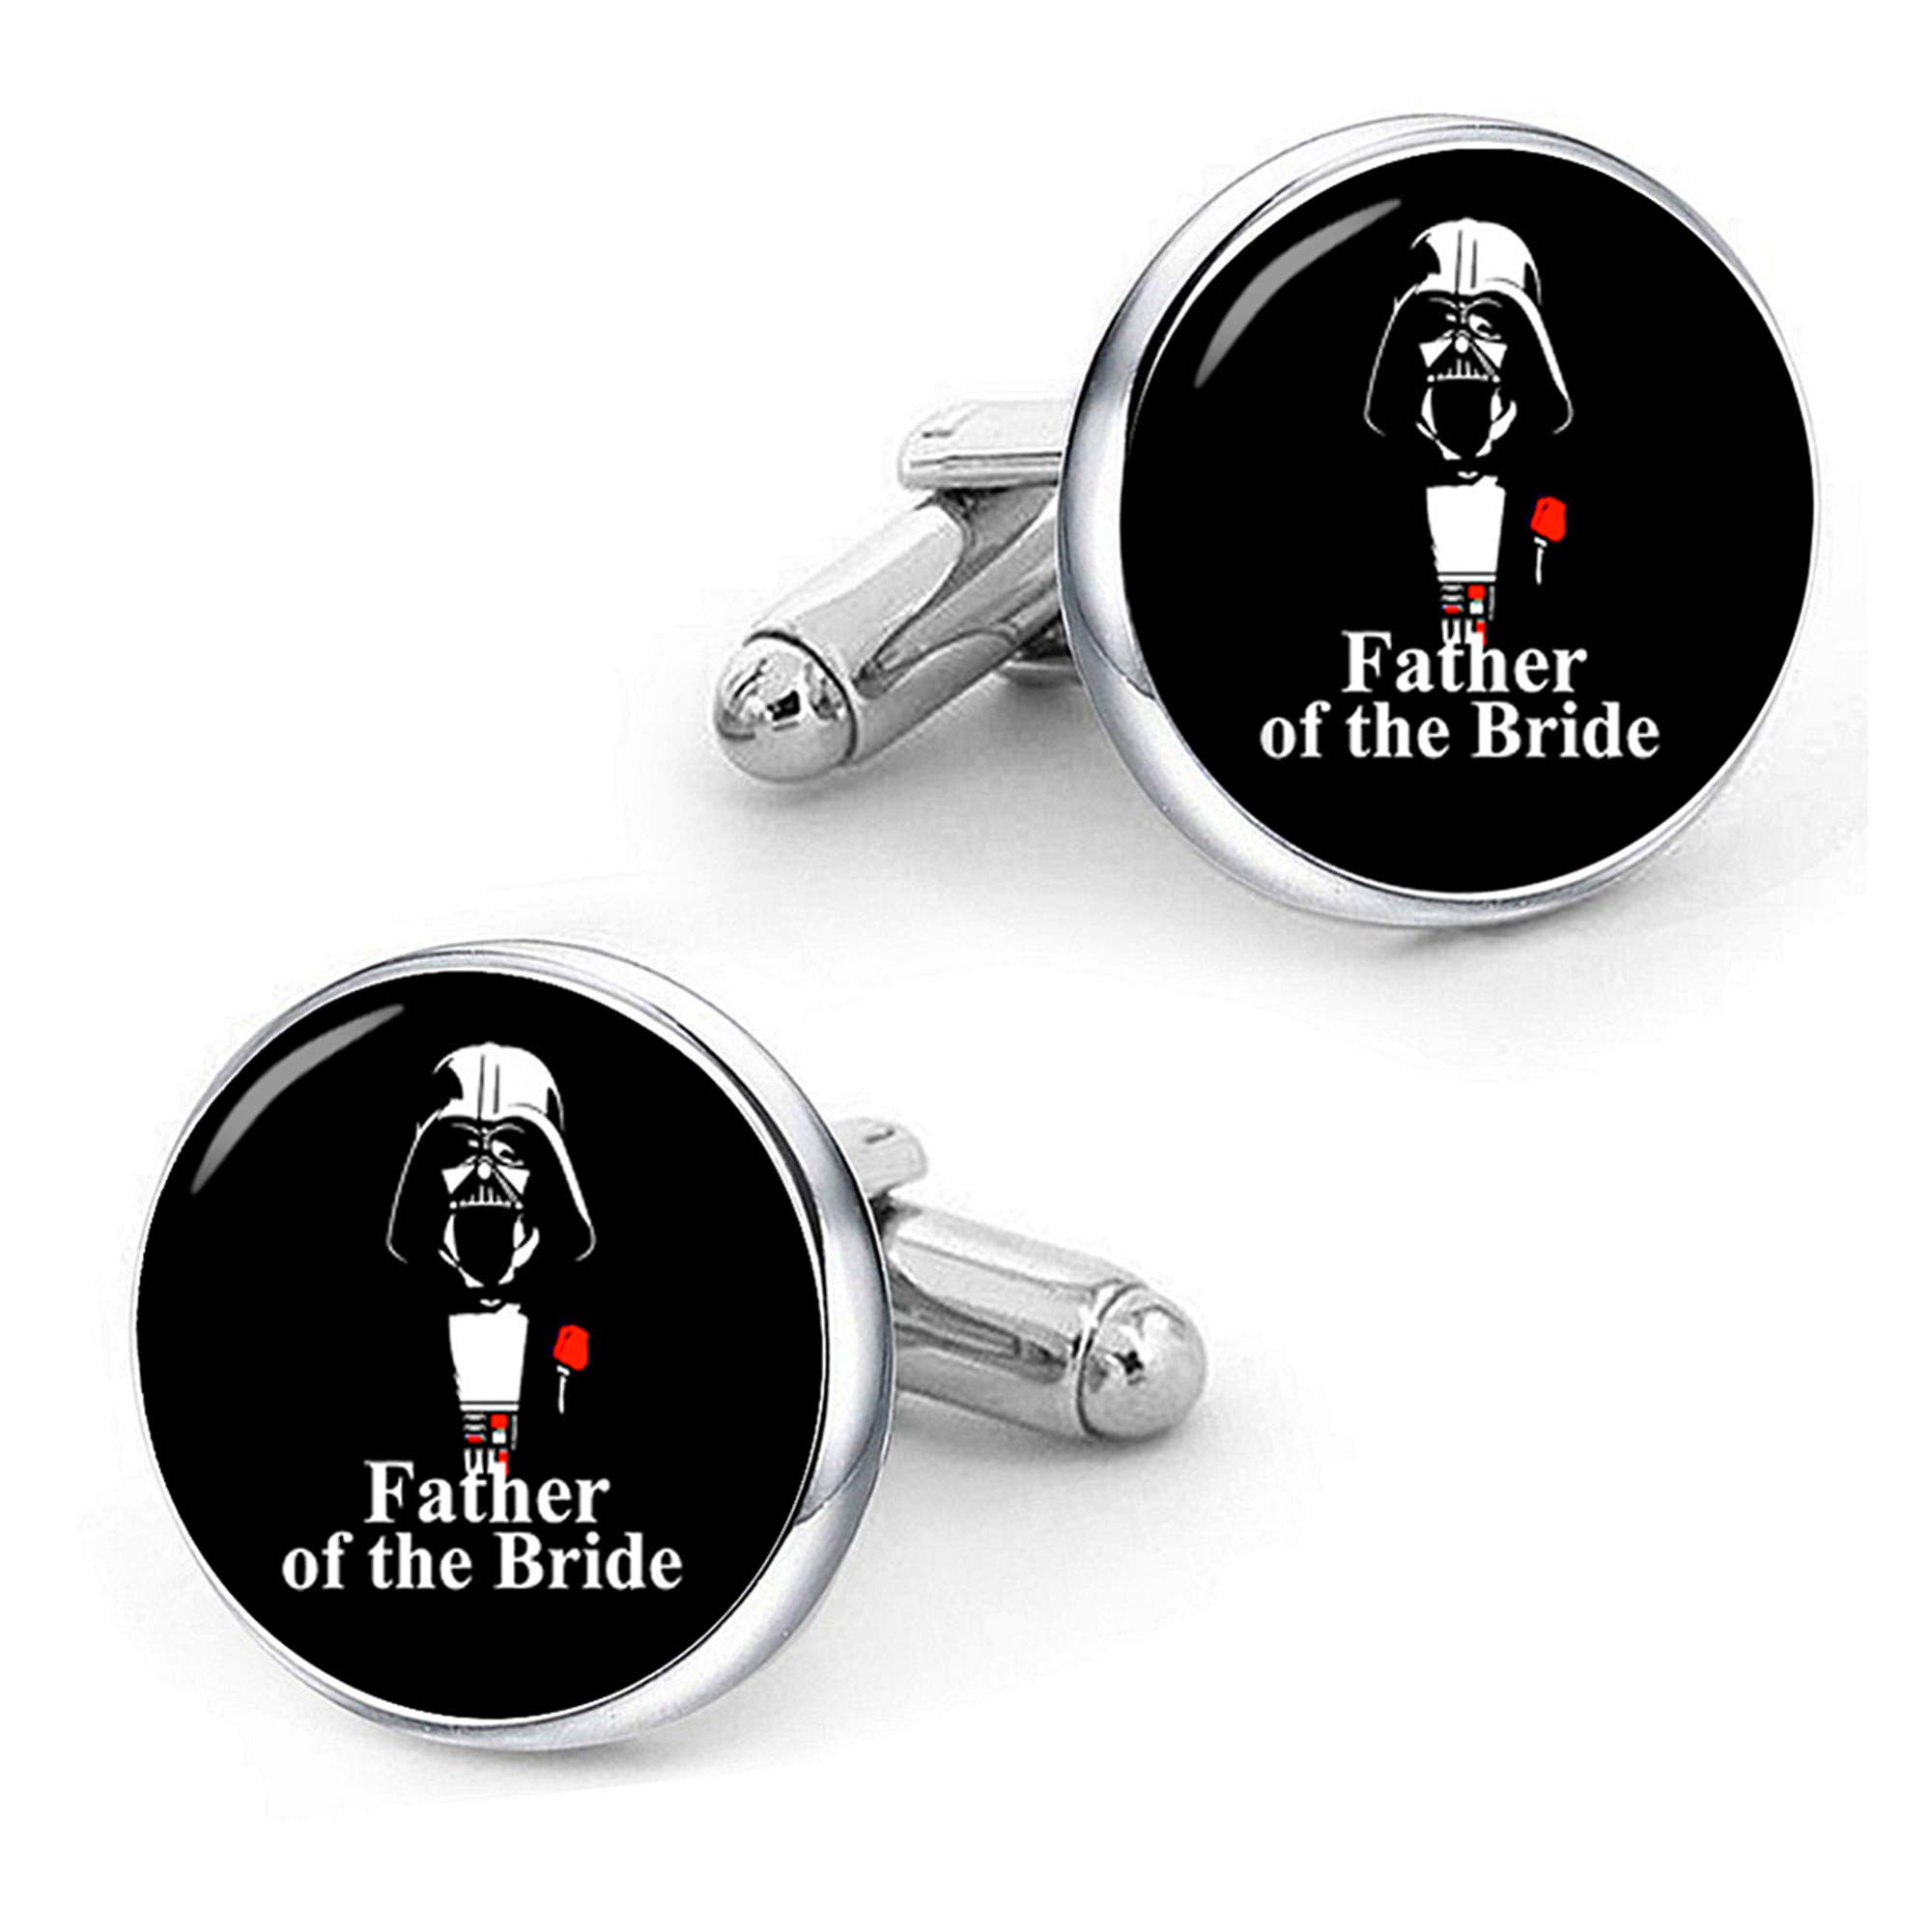 Kooer Father Of The Bride Cufflinks For Star Style Handmade Custom Personalized Wedding Cuff Links